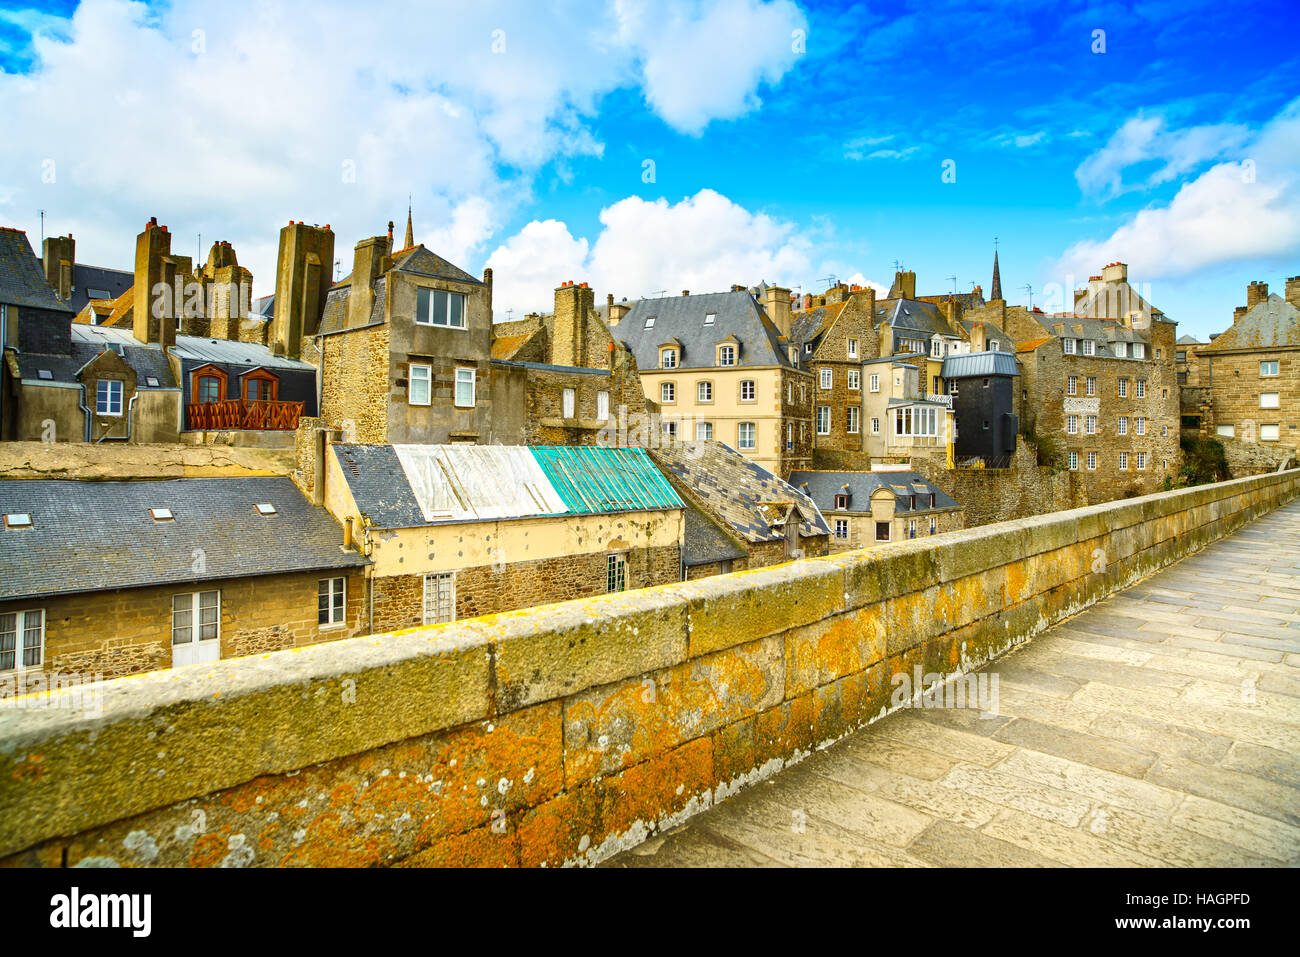 Saint Malo city walls and houses. Brittany, France, Europe. - Stock Image